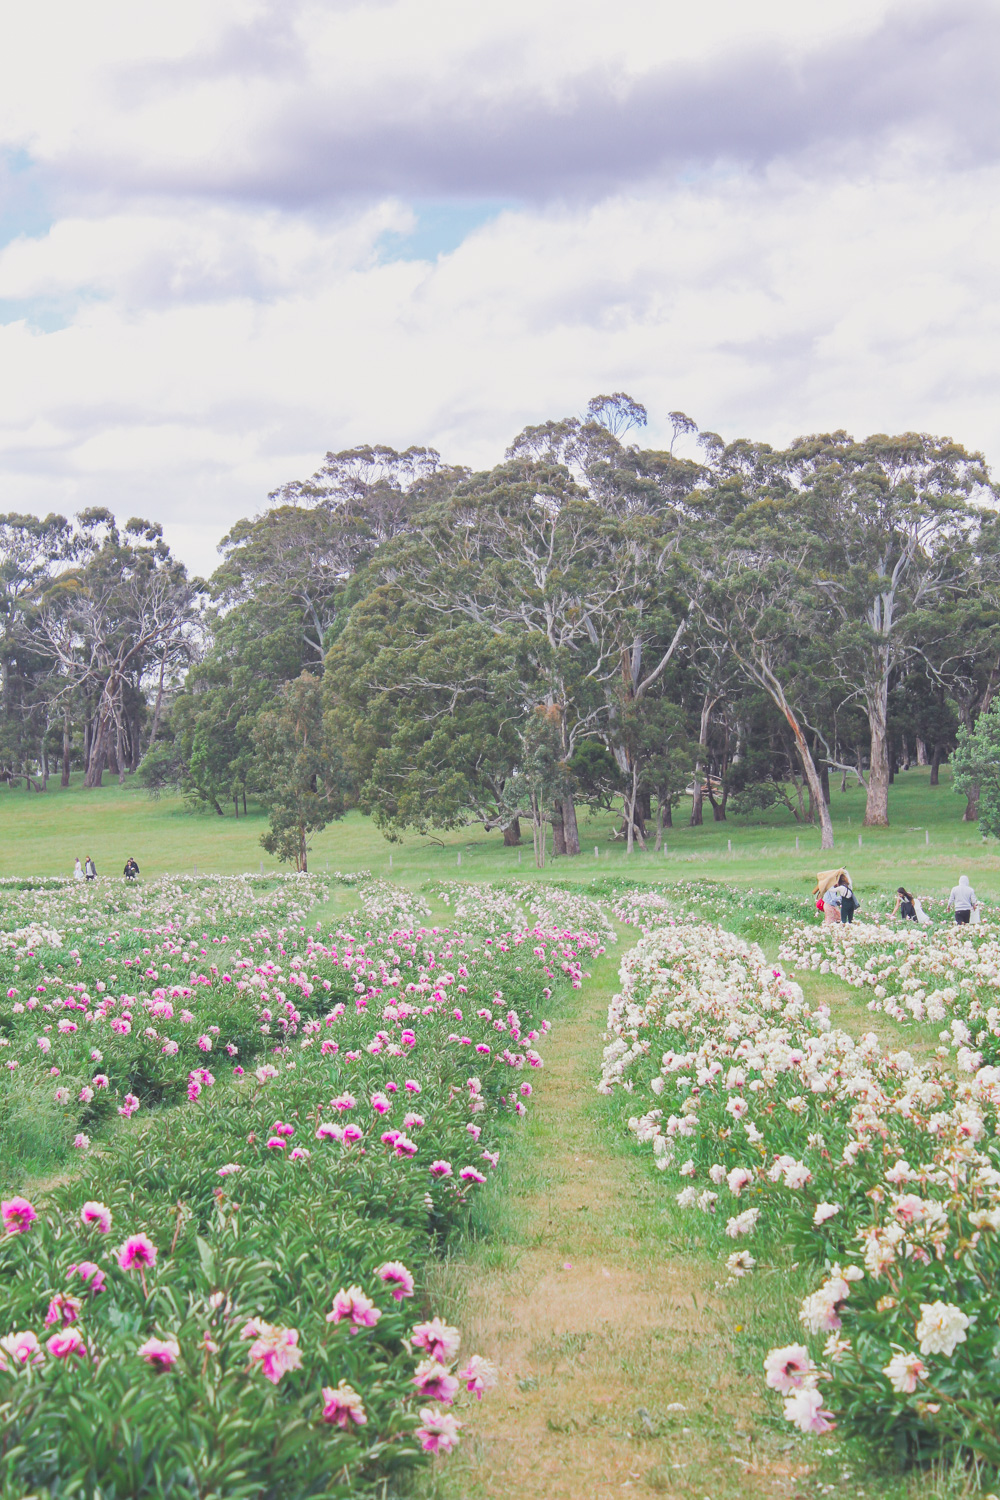 Spring Hill Peony Farm in Full Bloom during the November season